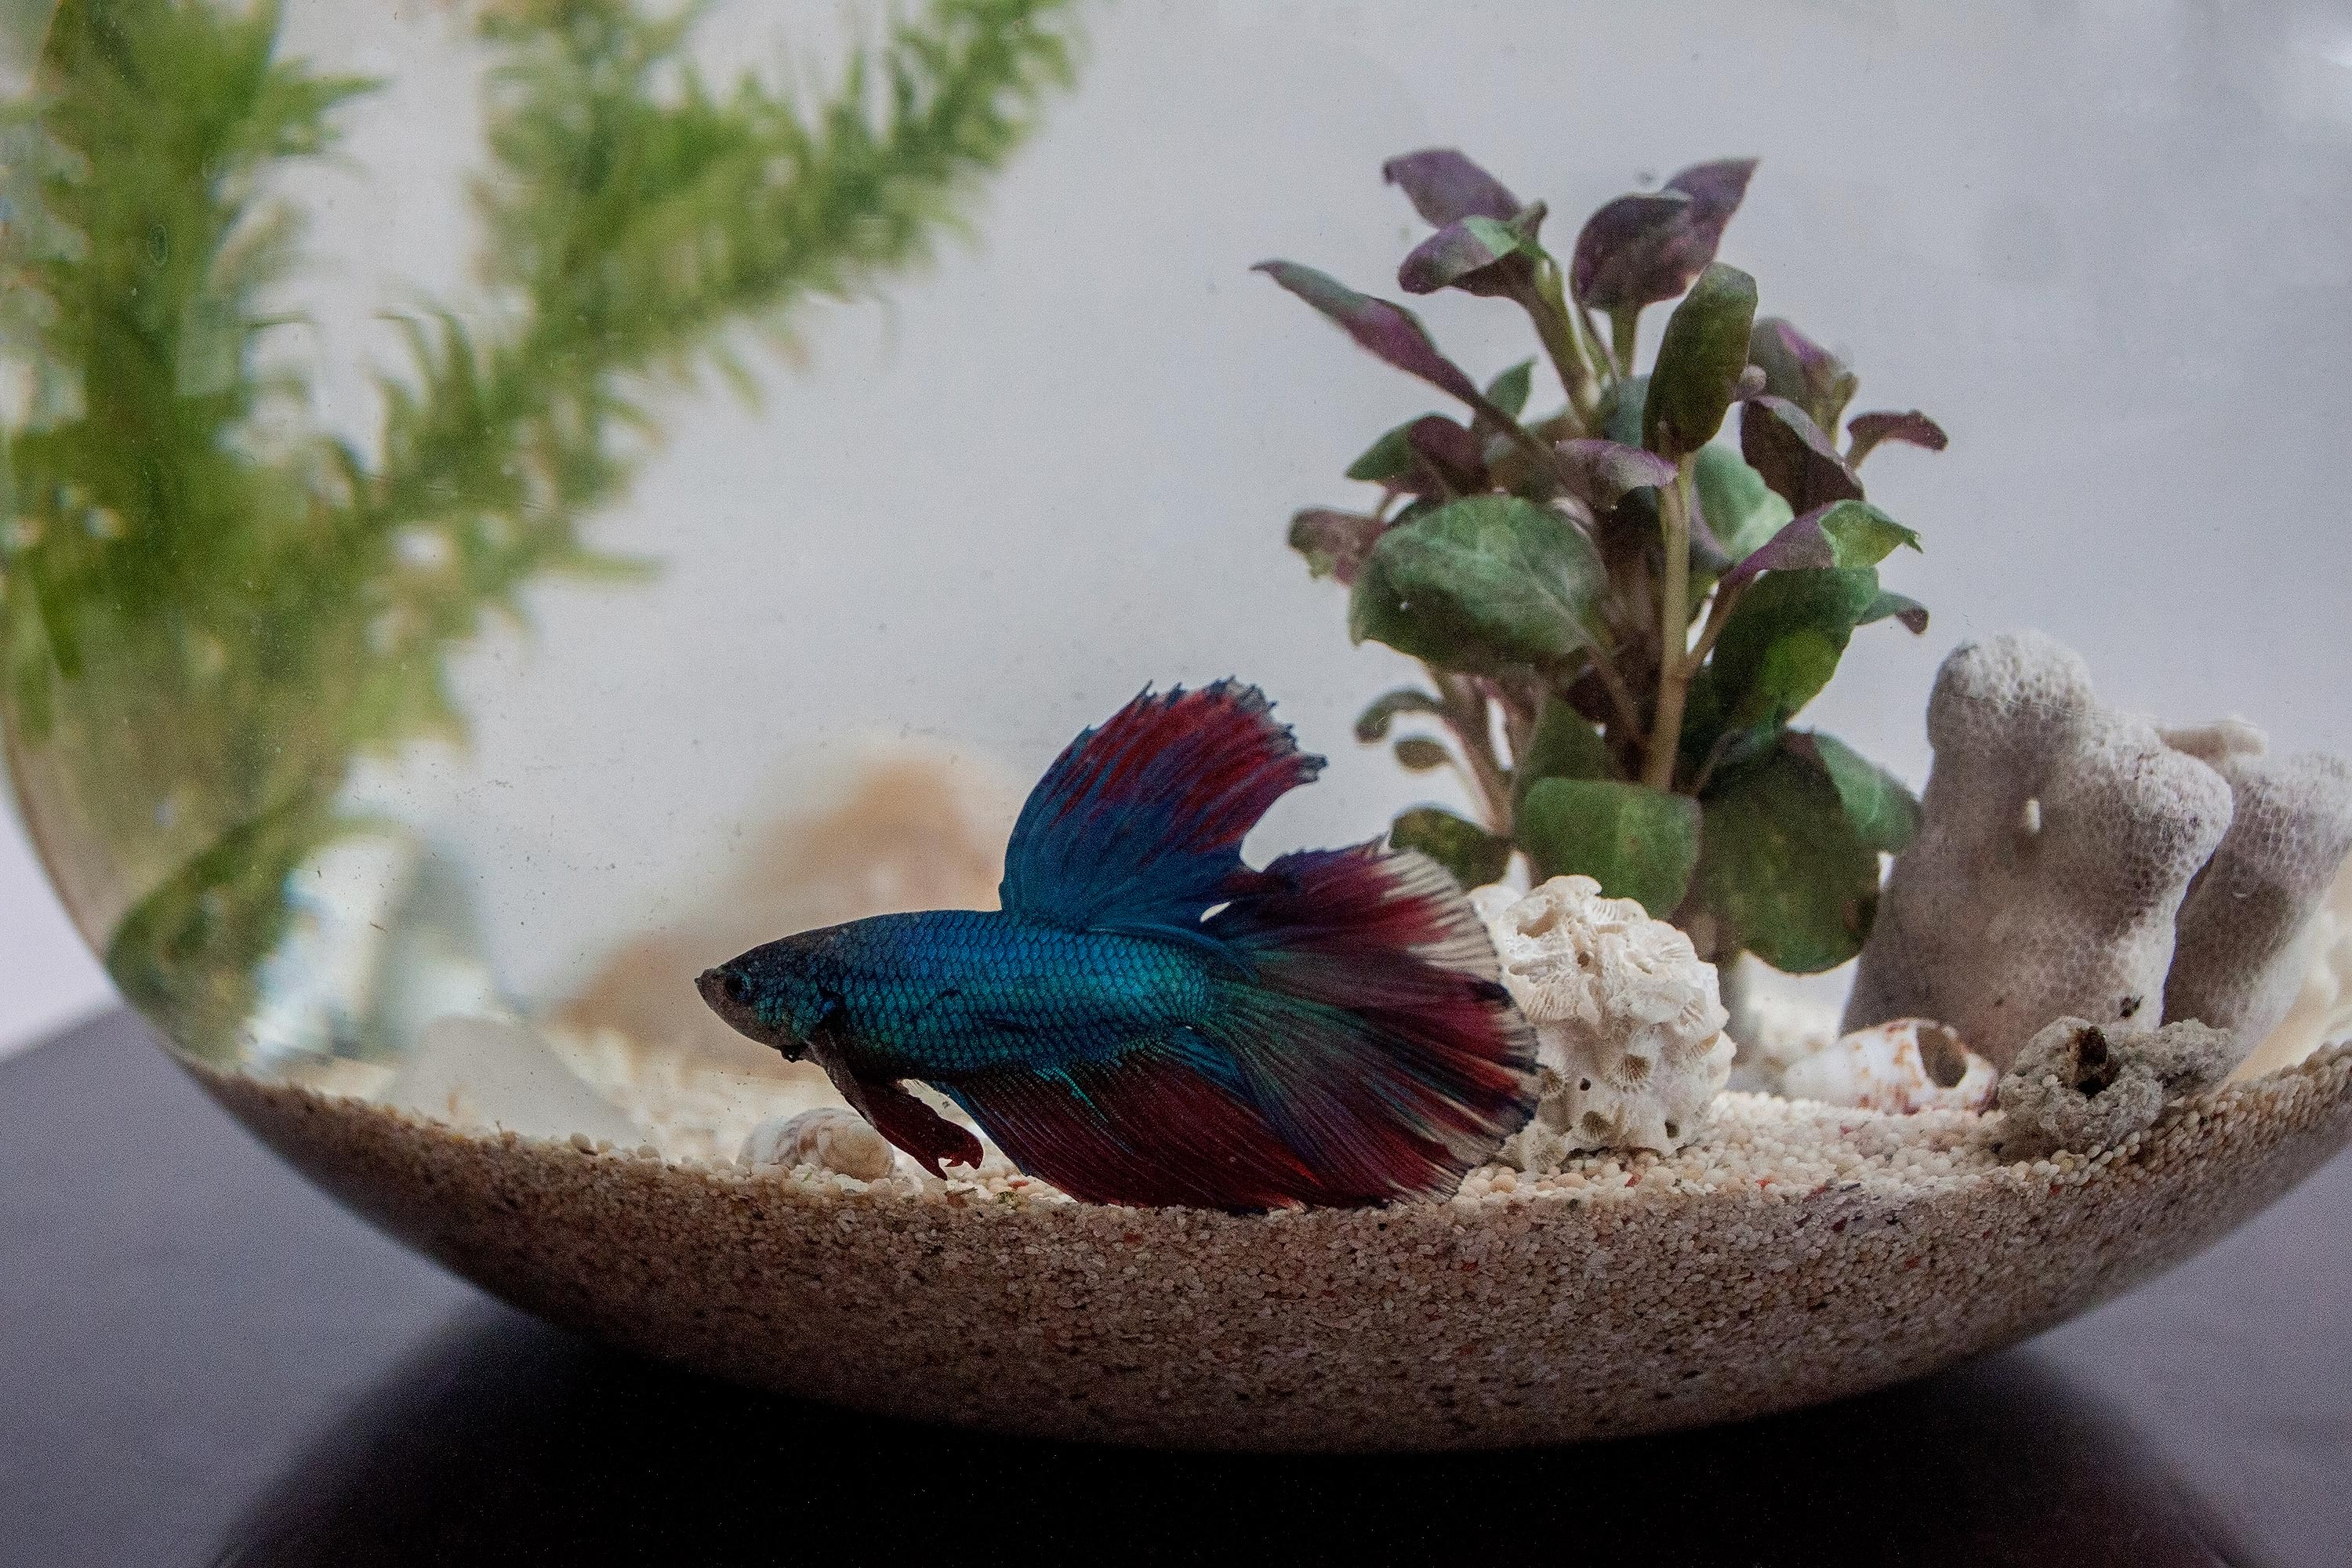 How to decorate betta fish bowls using plants animals for Betta fish habitat